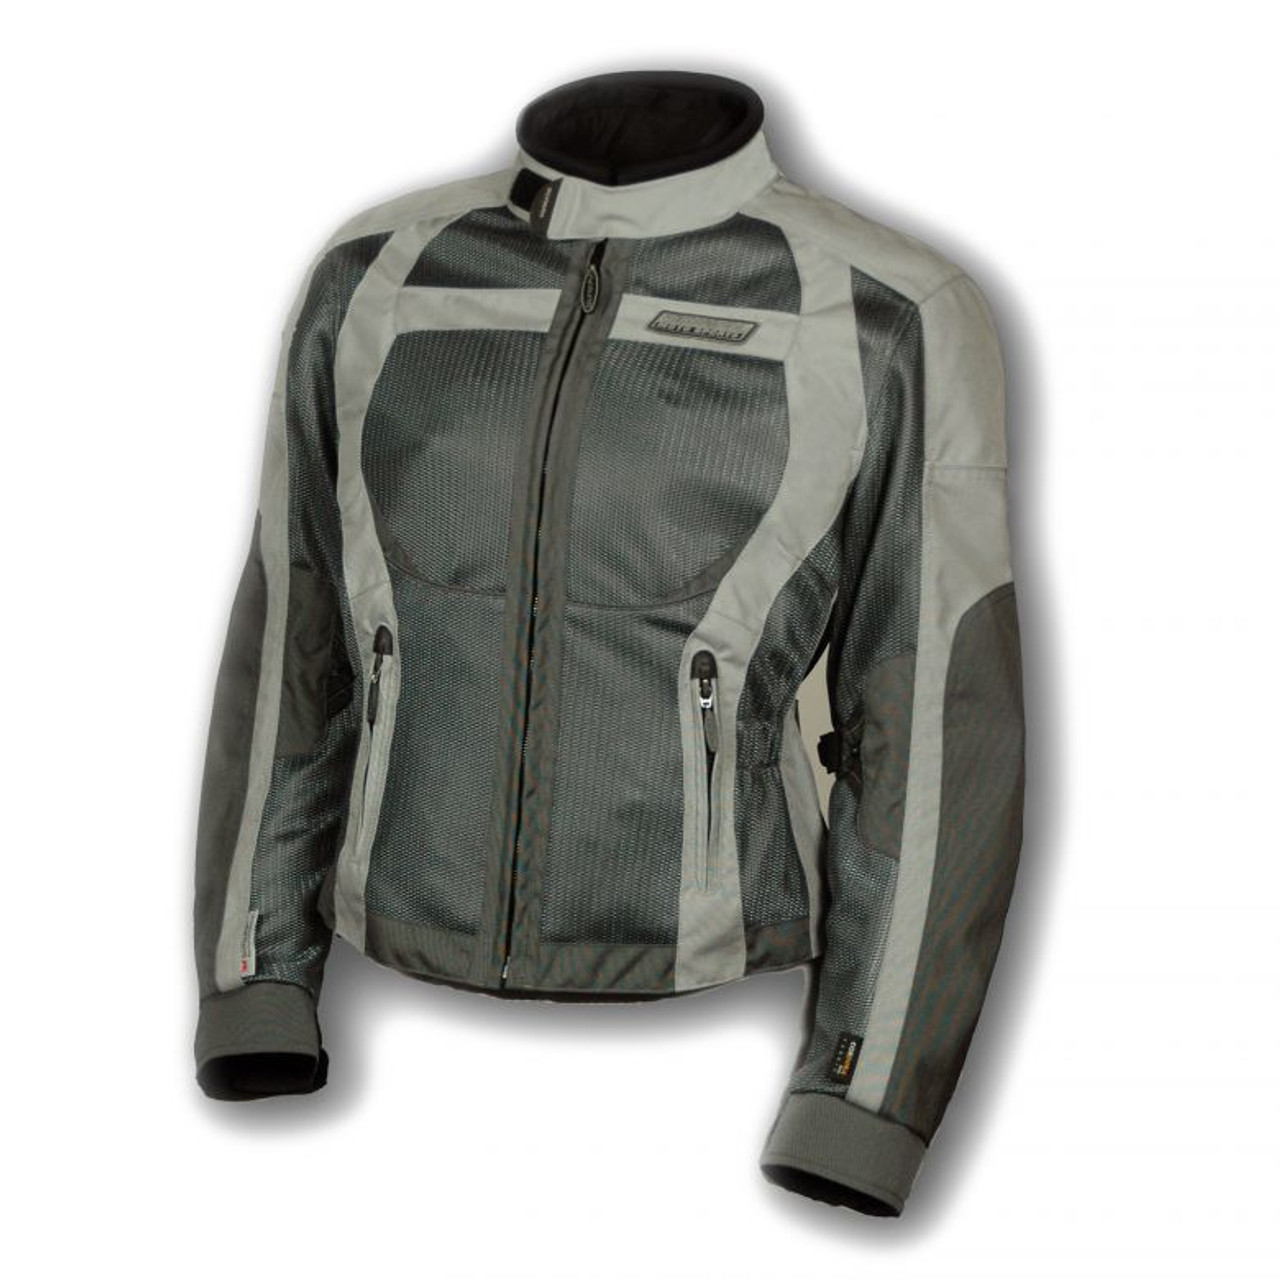 Olympia Men/'s Dakar Dual Sport Motorcycle Jacket Grey Choose Size